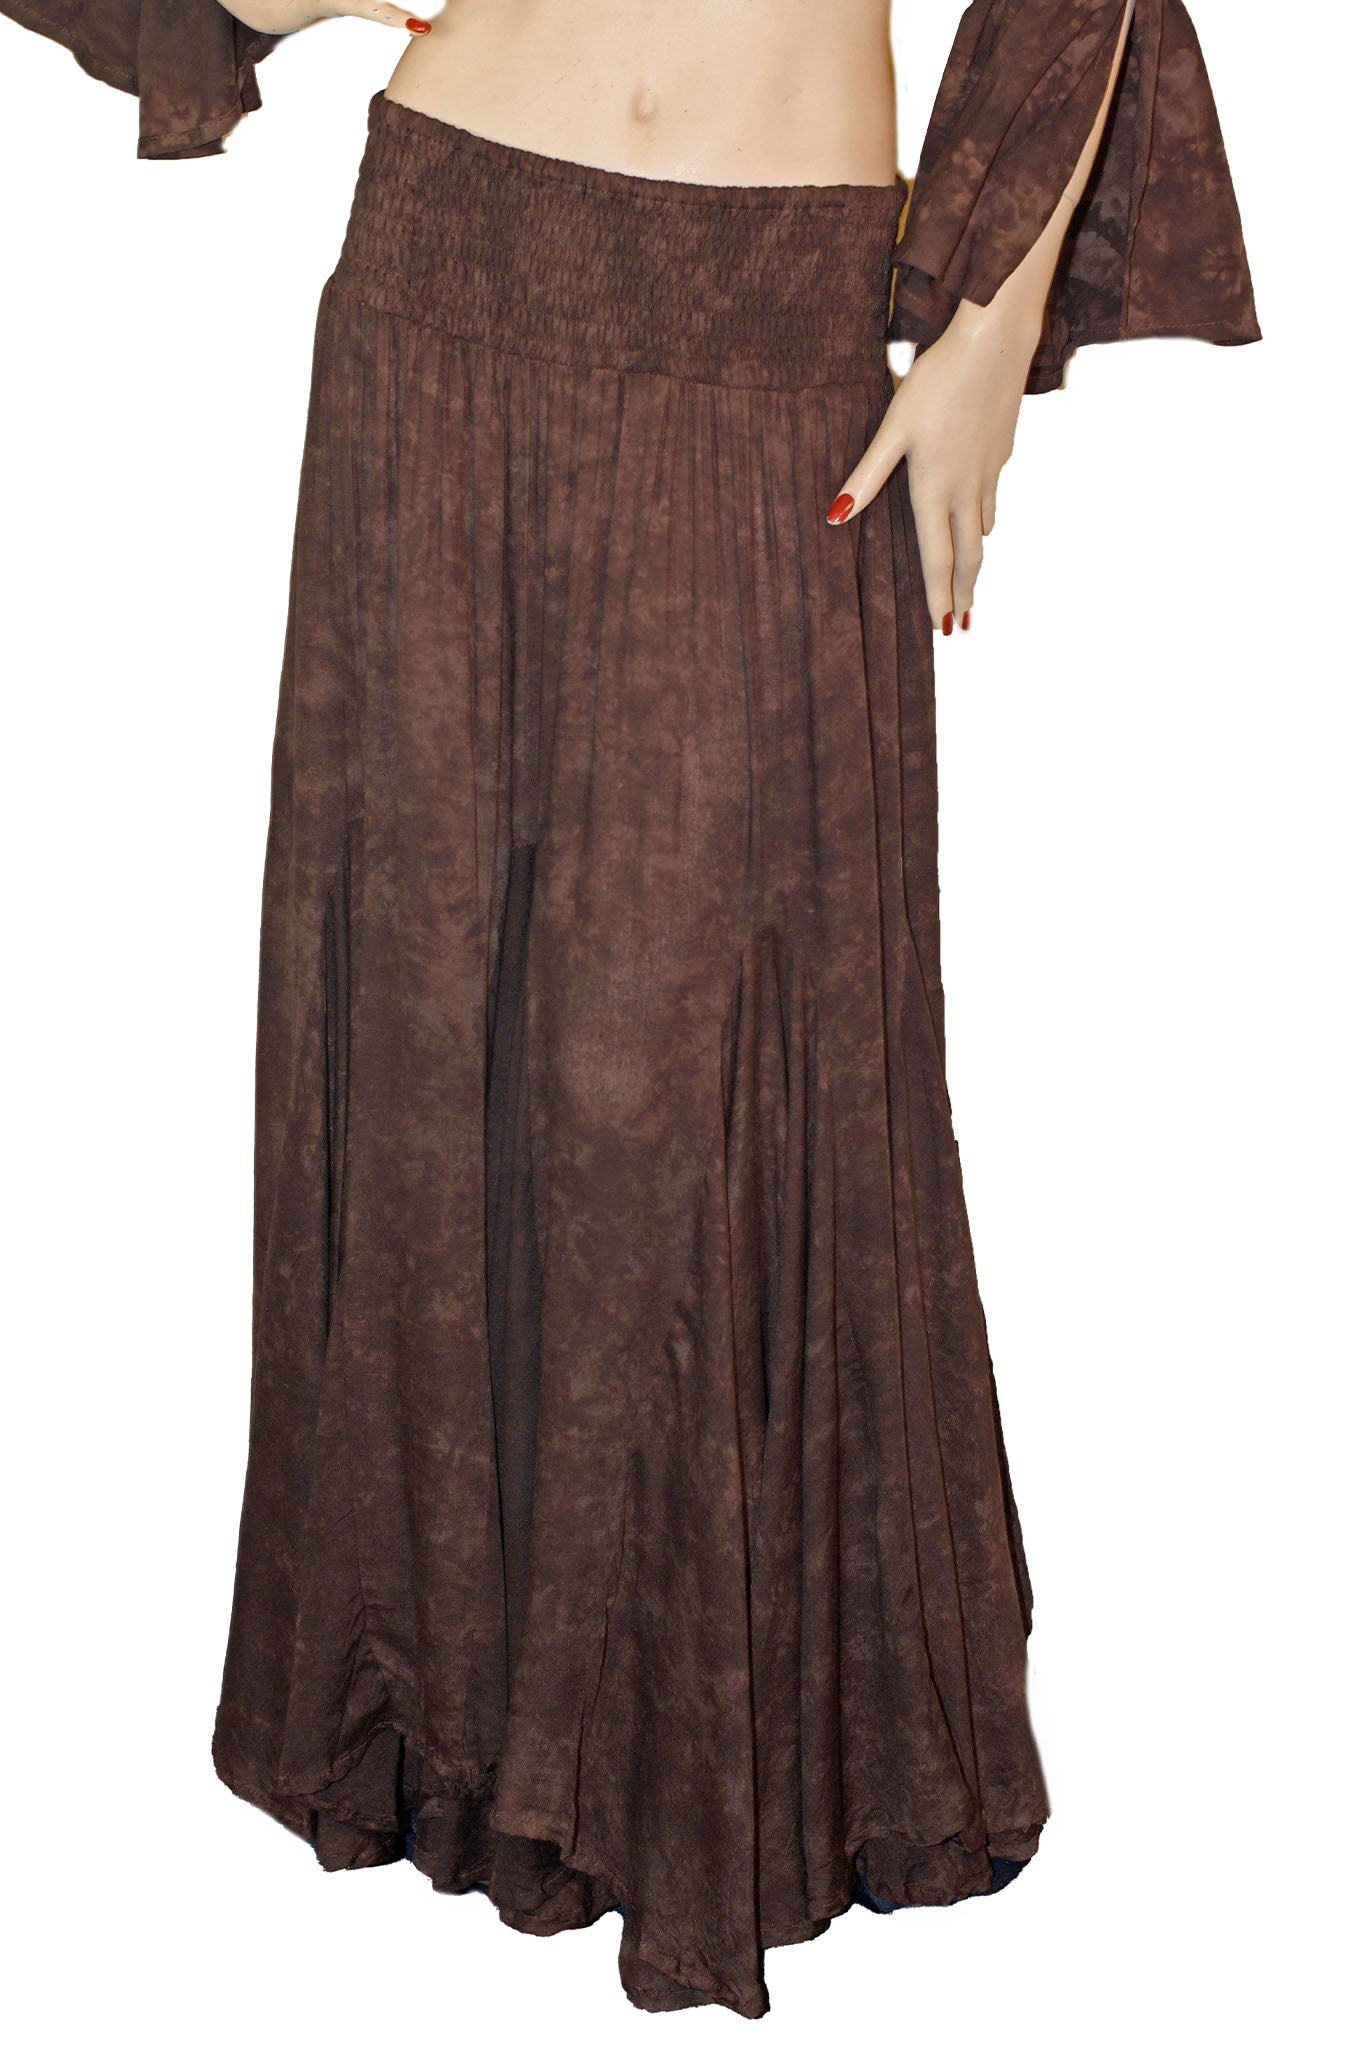 Renaissance Skirt Half Circle Belly Dance Skirt Brown